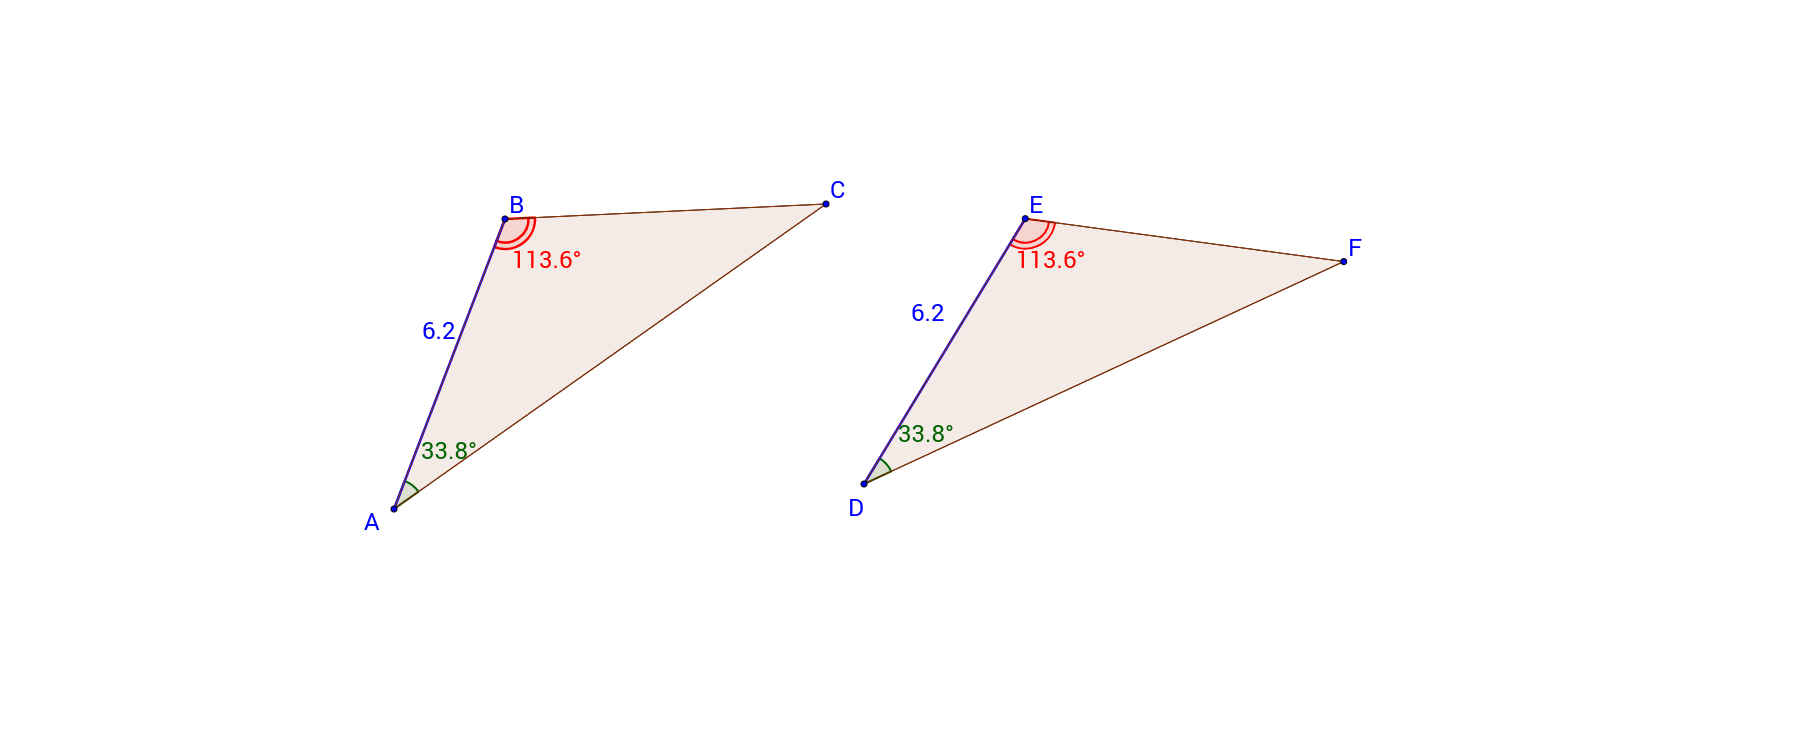 Congruent Triangles 2 (ASA)